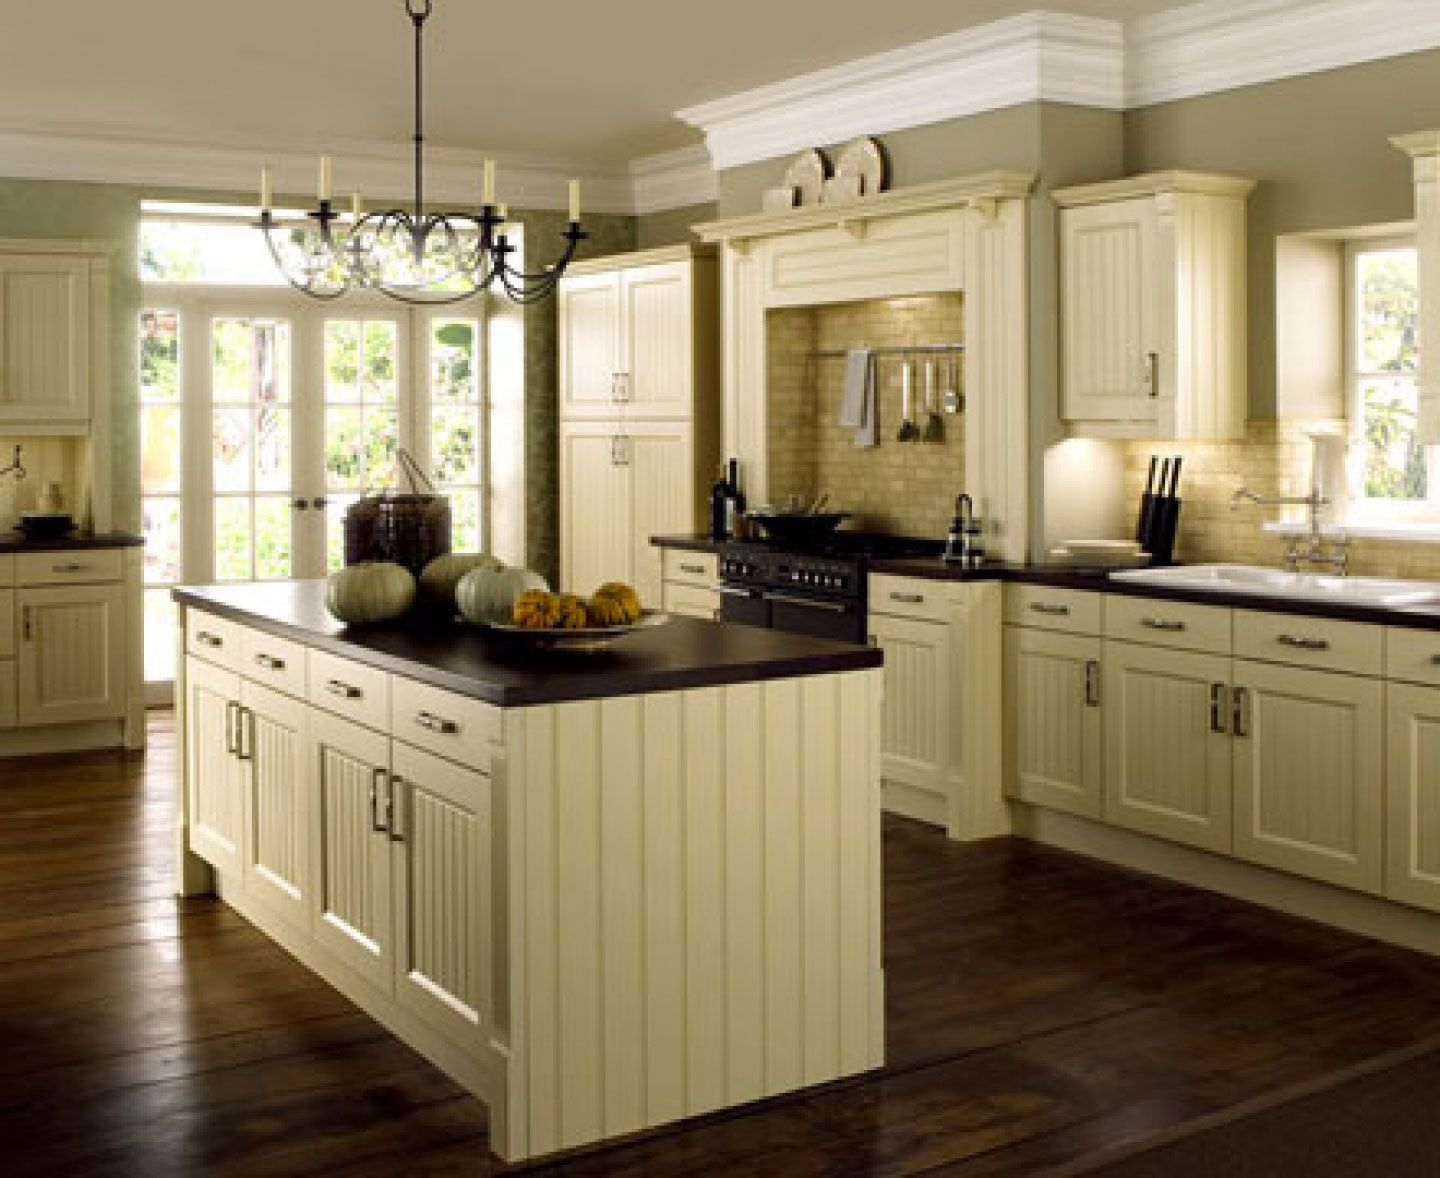 Cream Kitchen Cabinets With Dark Floors Google Search Traditional Kitchen Design Country Kitchen White Wood Kitchens